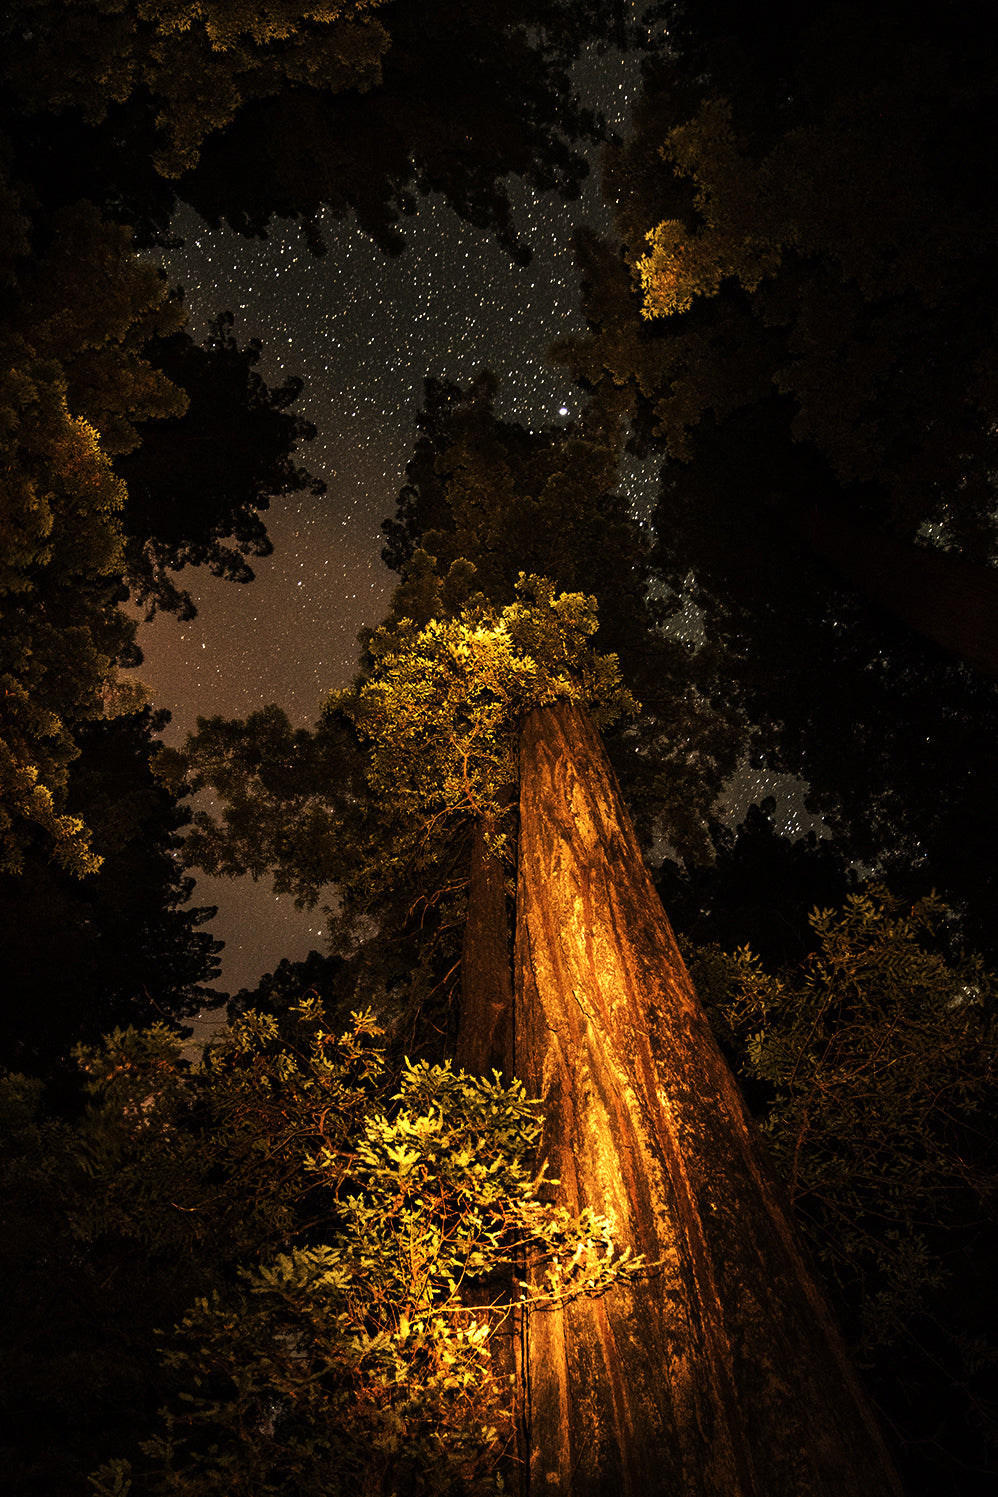 Humboldt Redwoods 4, California